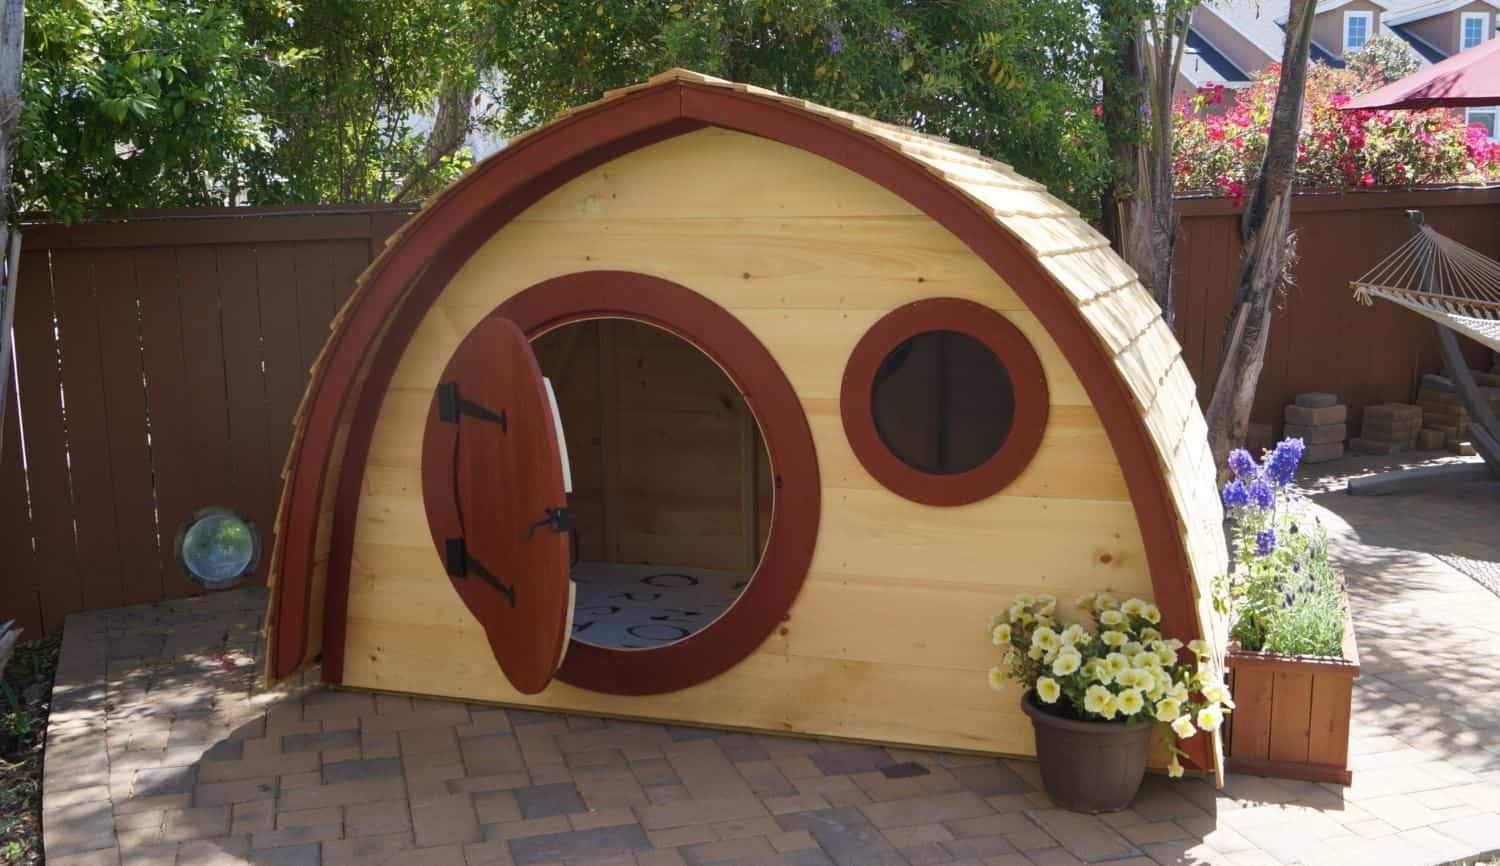 Best Wooden Playhouses for Kids 2020 Reviewed — Top 5 ...